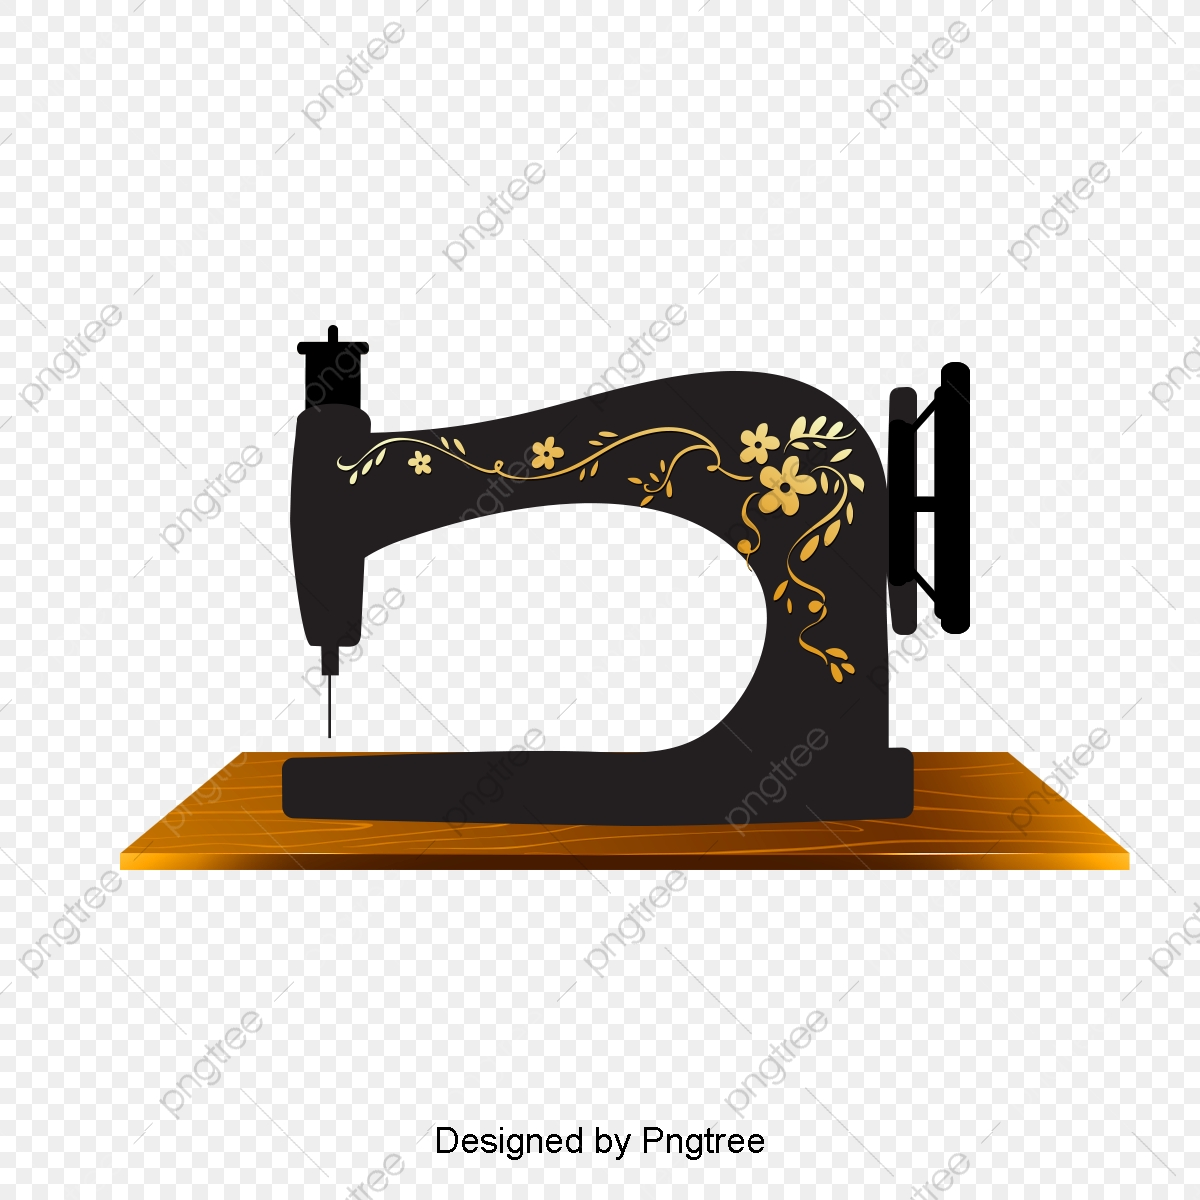 Vintage Sewing Machine, Retro, Sewing Machine, Tailor PNG